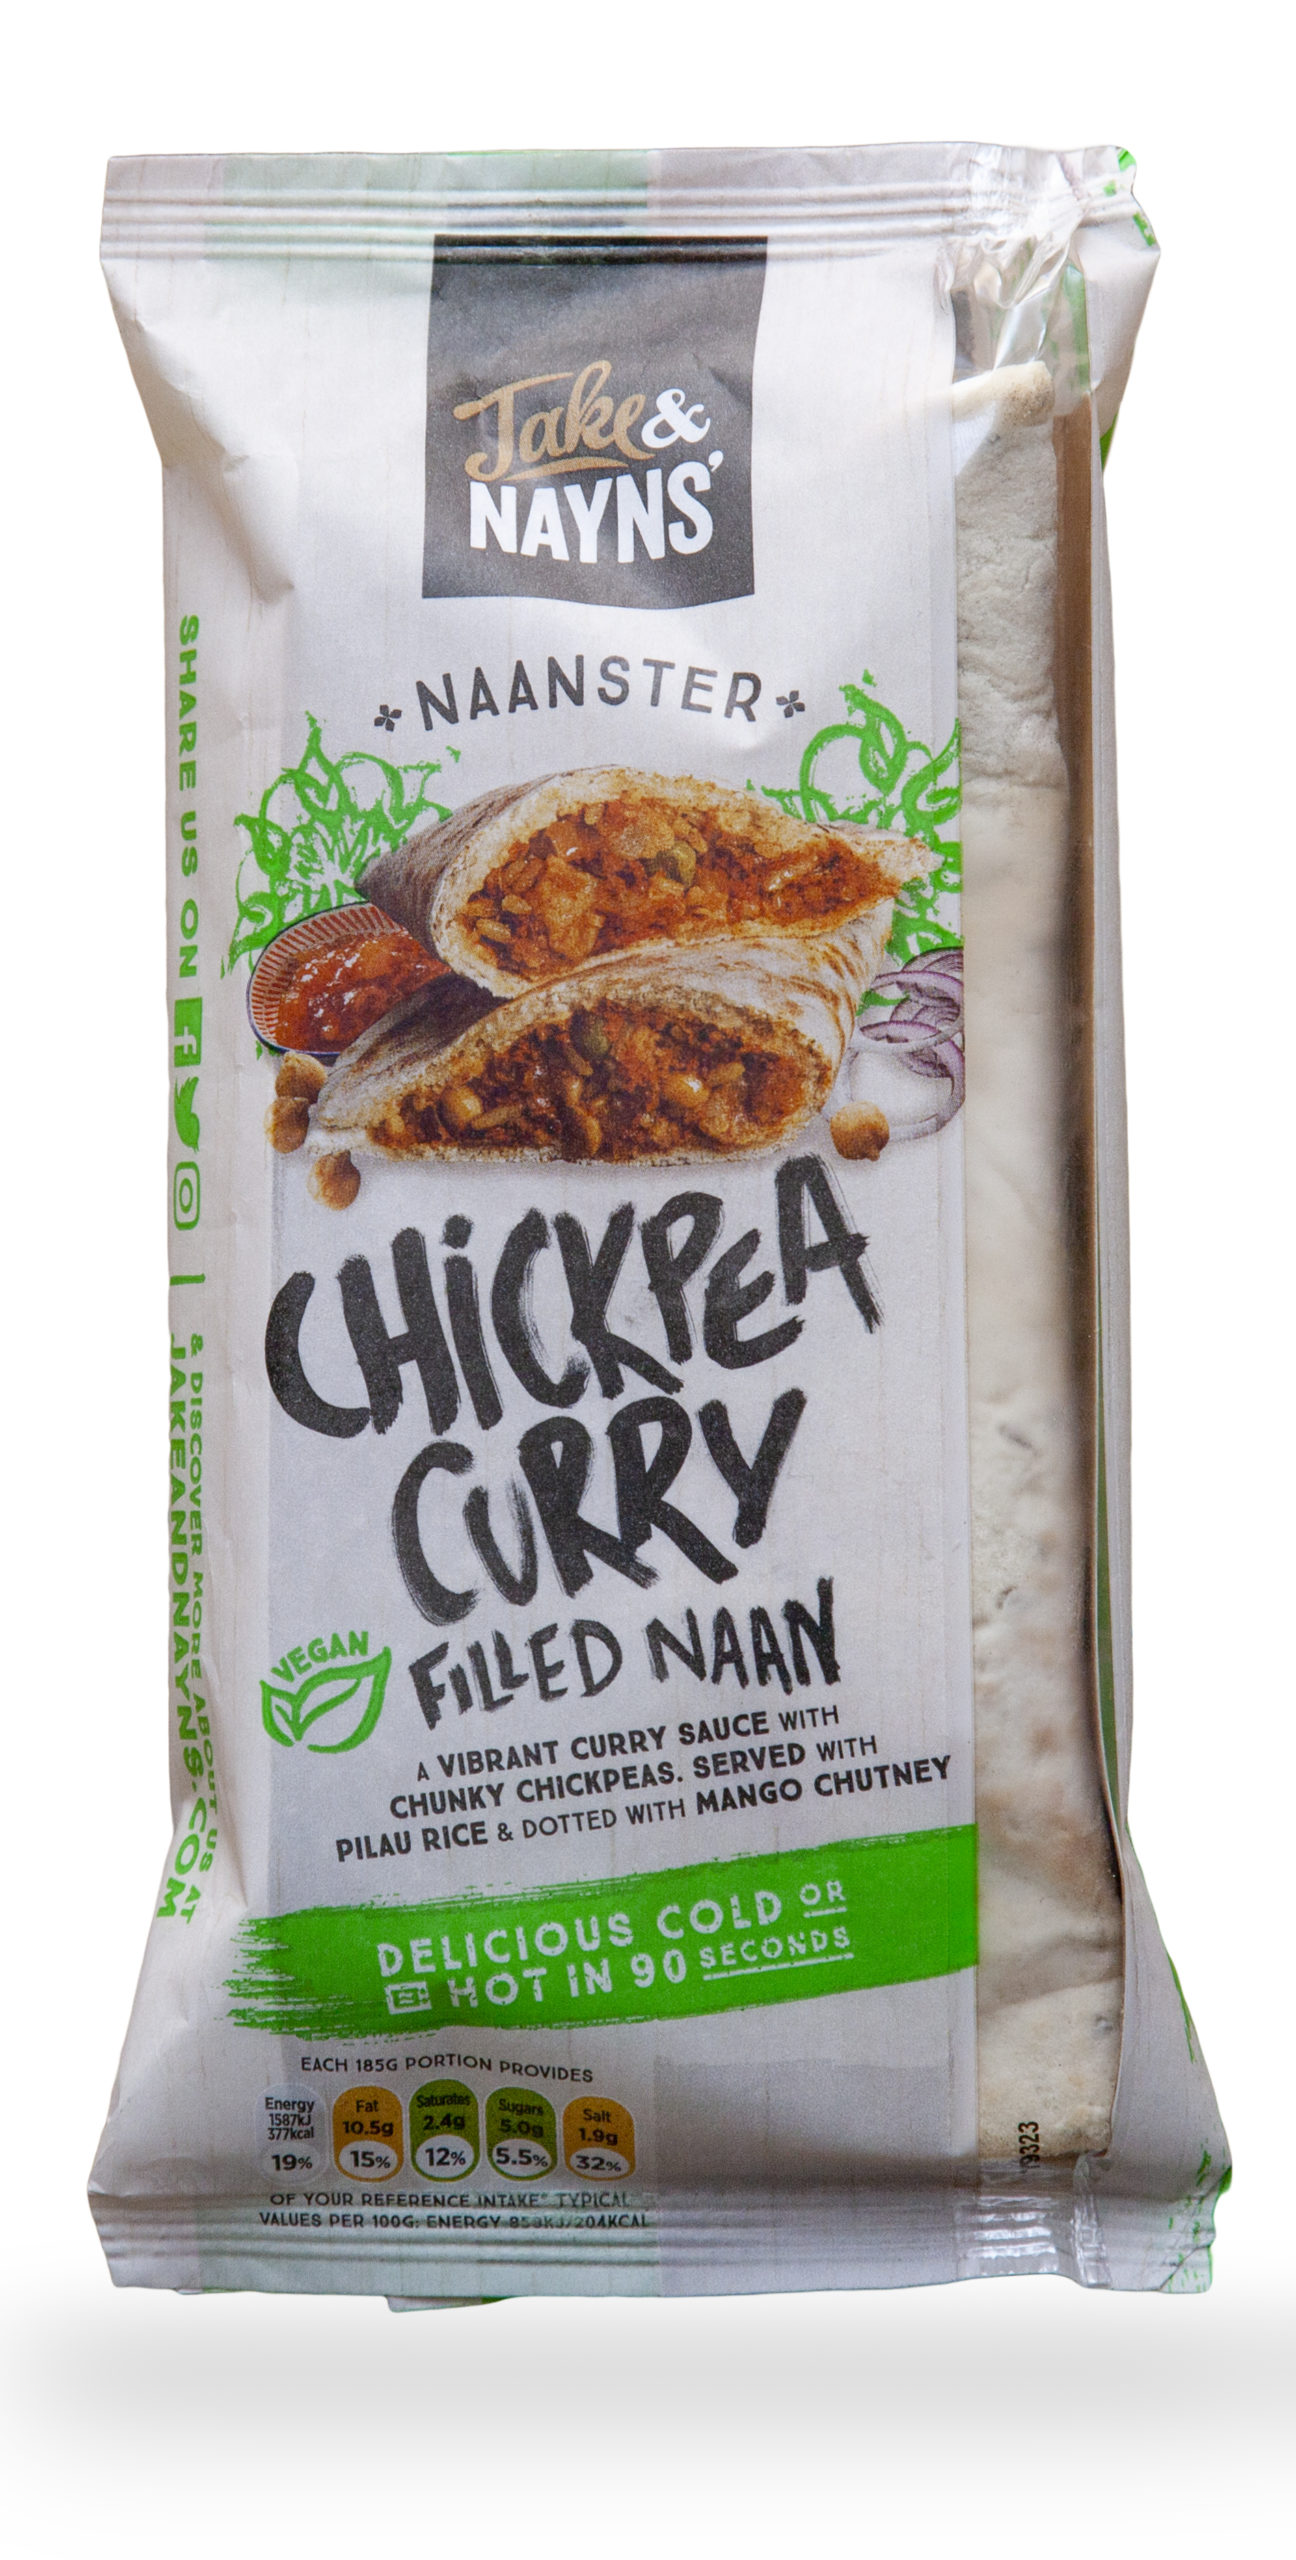 Naanster chickpea curry